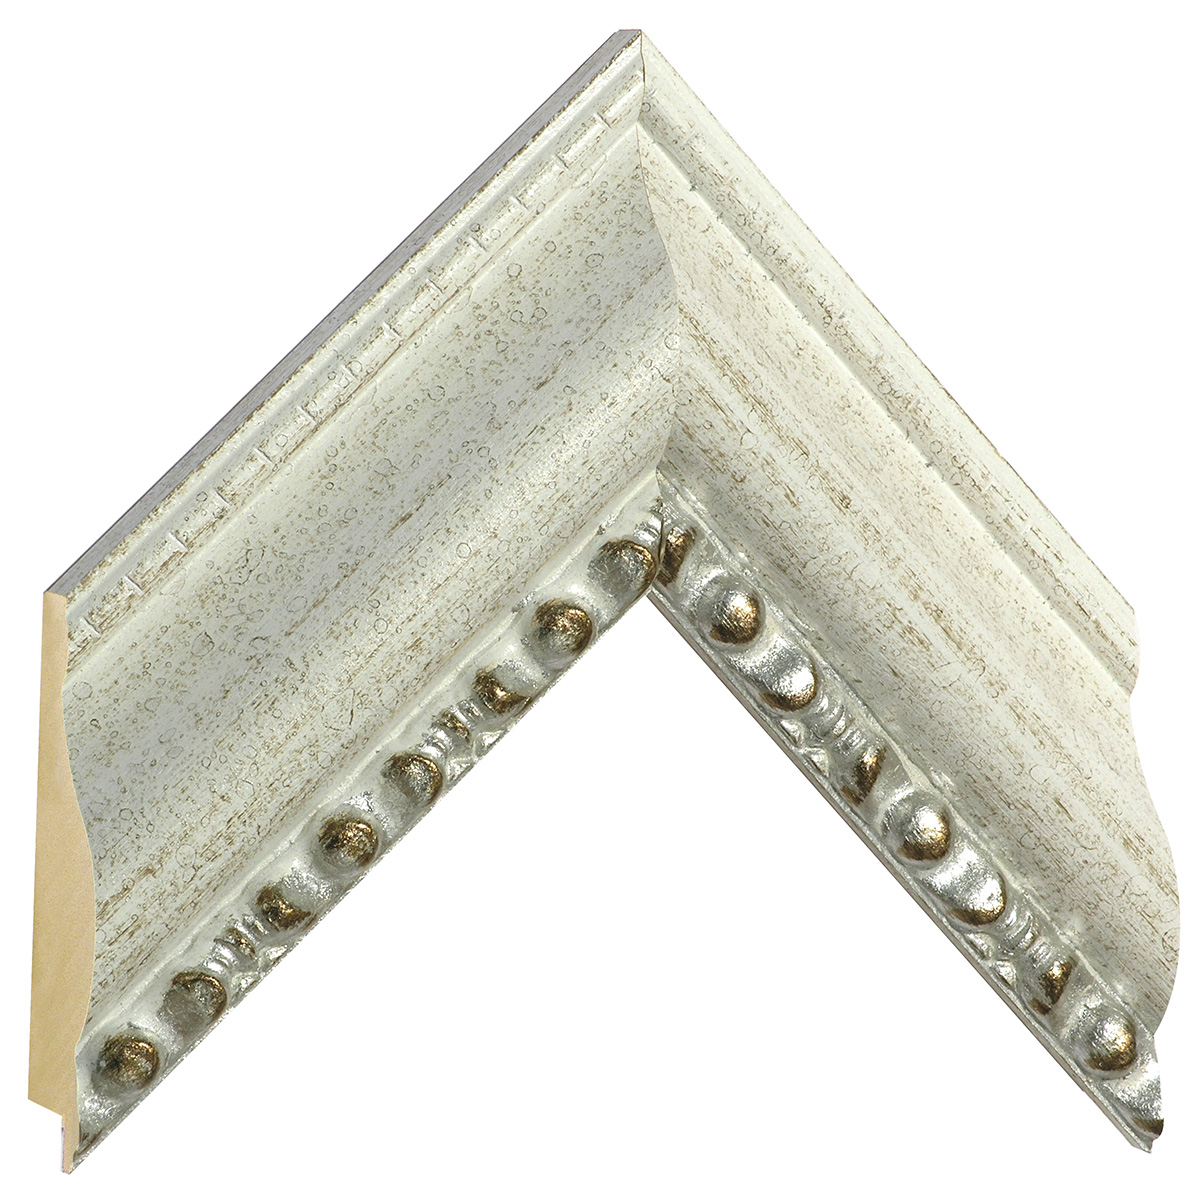 Moulding ayous, width 75mm, height 40, white, beaded edge